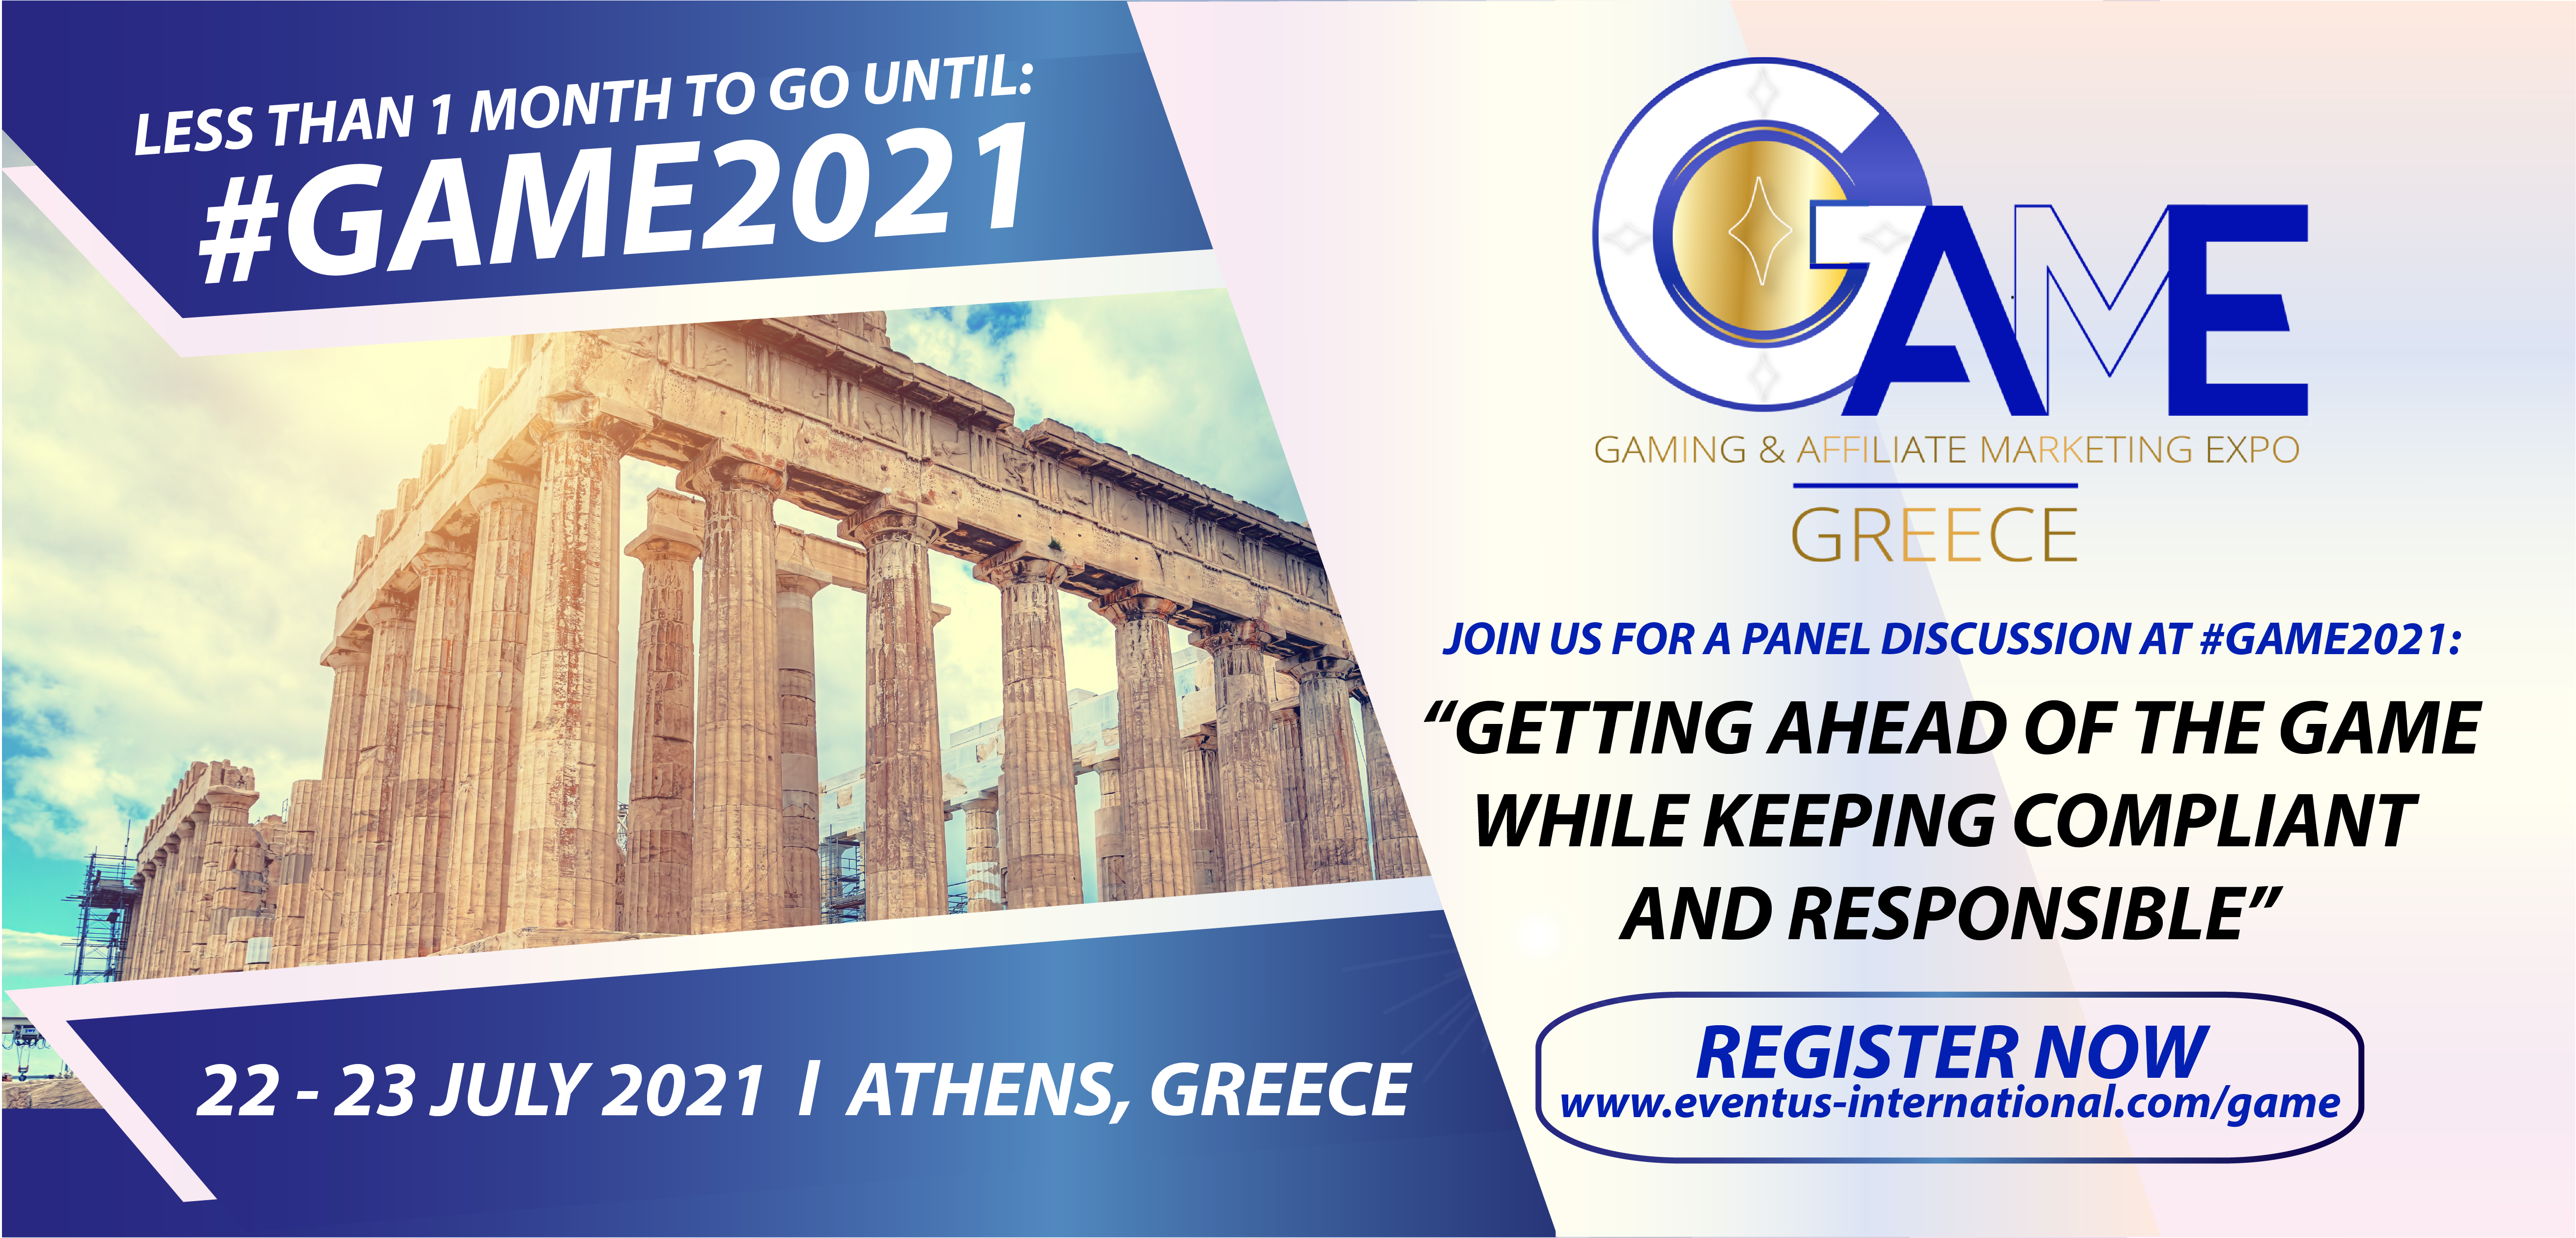 Greece Gaming Affiliate Marketing Expo: Tal Ron, Drihem Co. Is Playing The GAME For The First Time